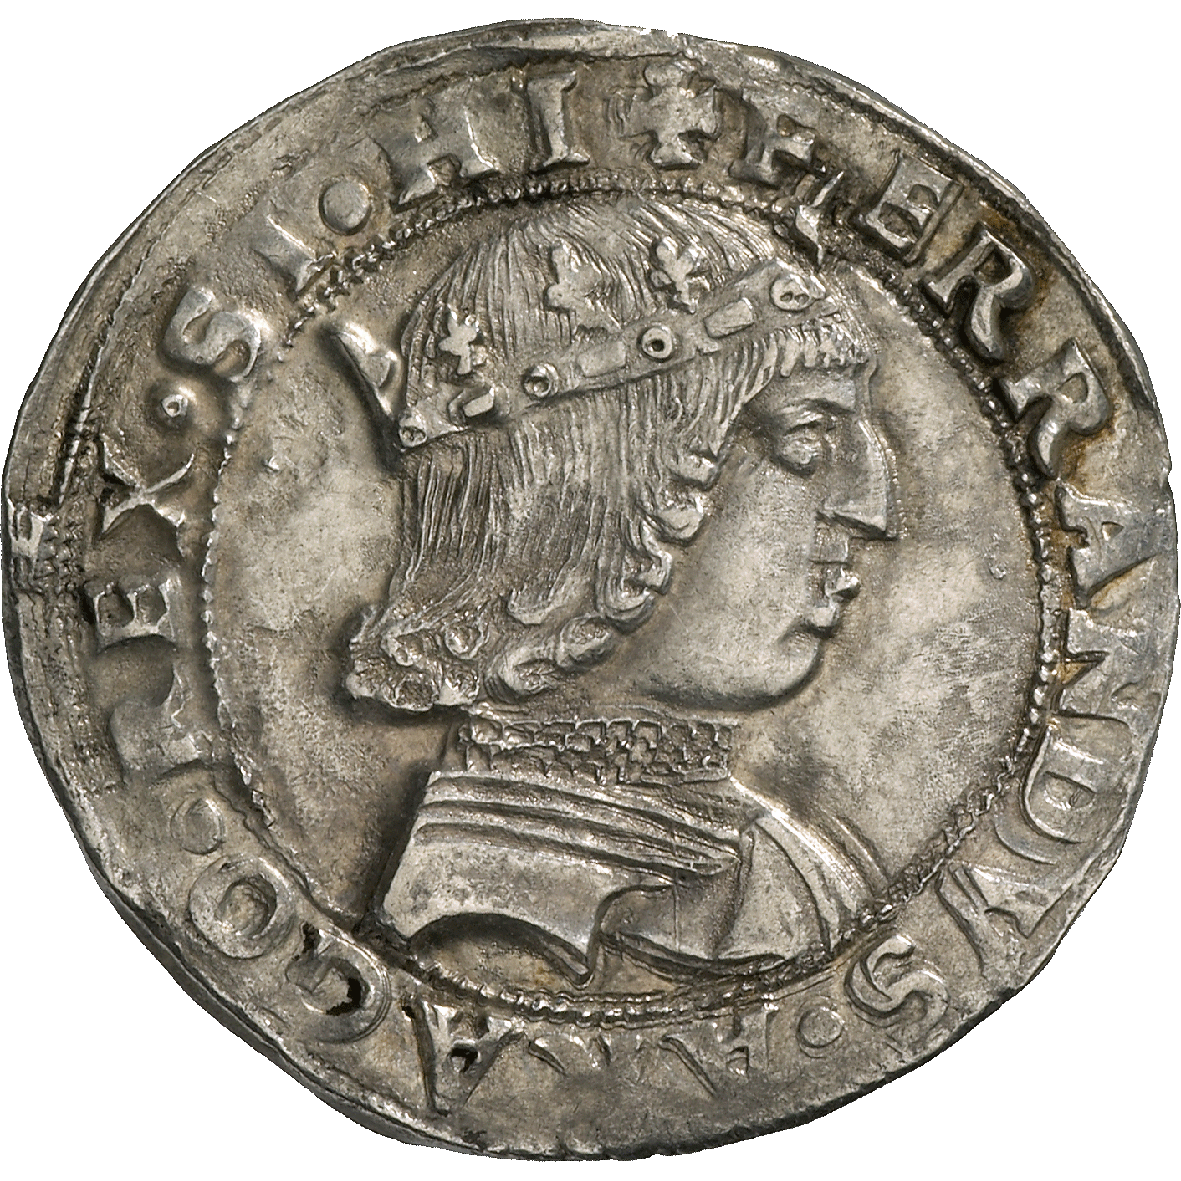 Kingdom of Napels, Ferdinand I of Aragon, Coronato  (obverse)